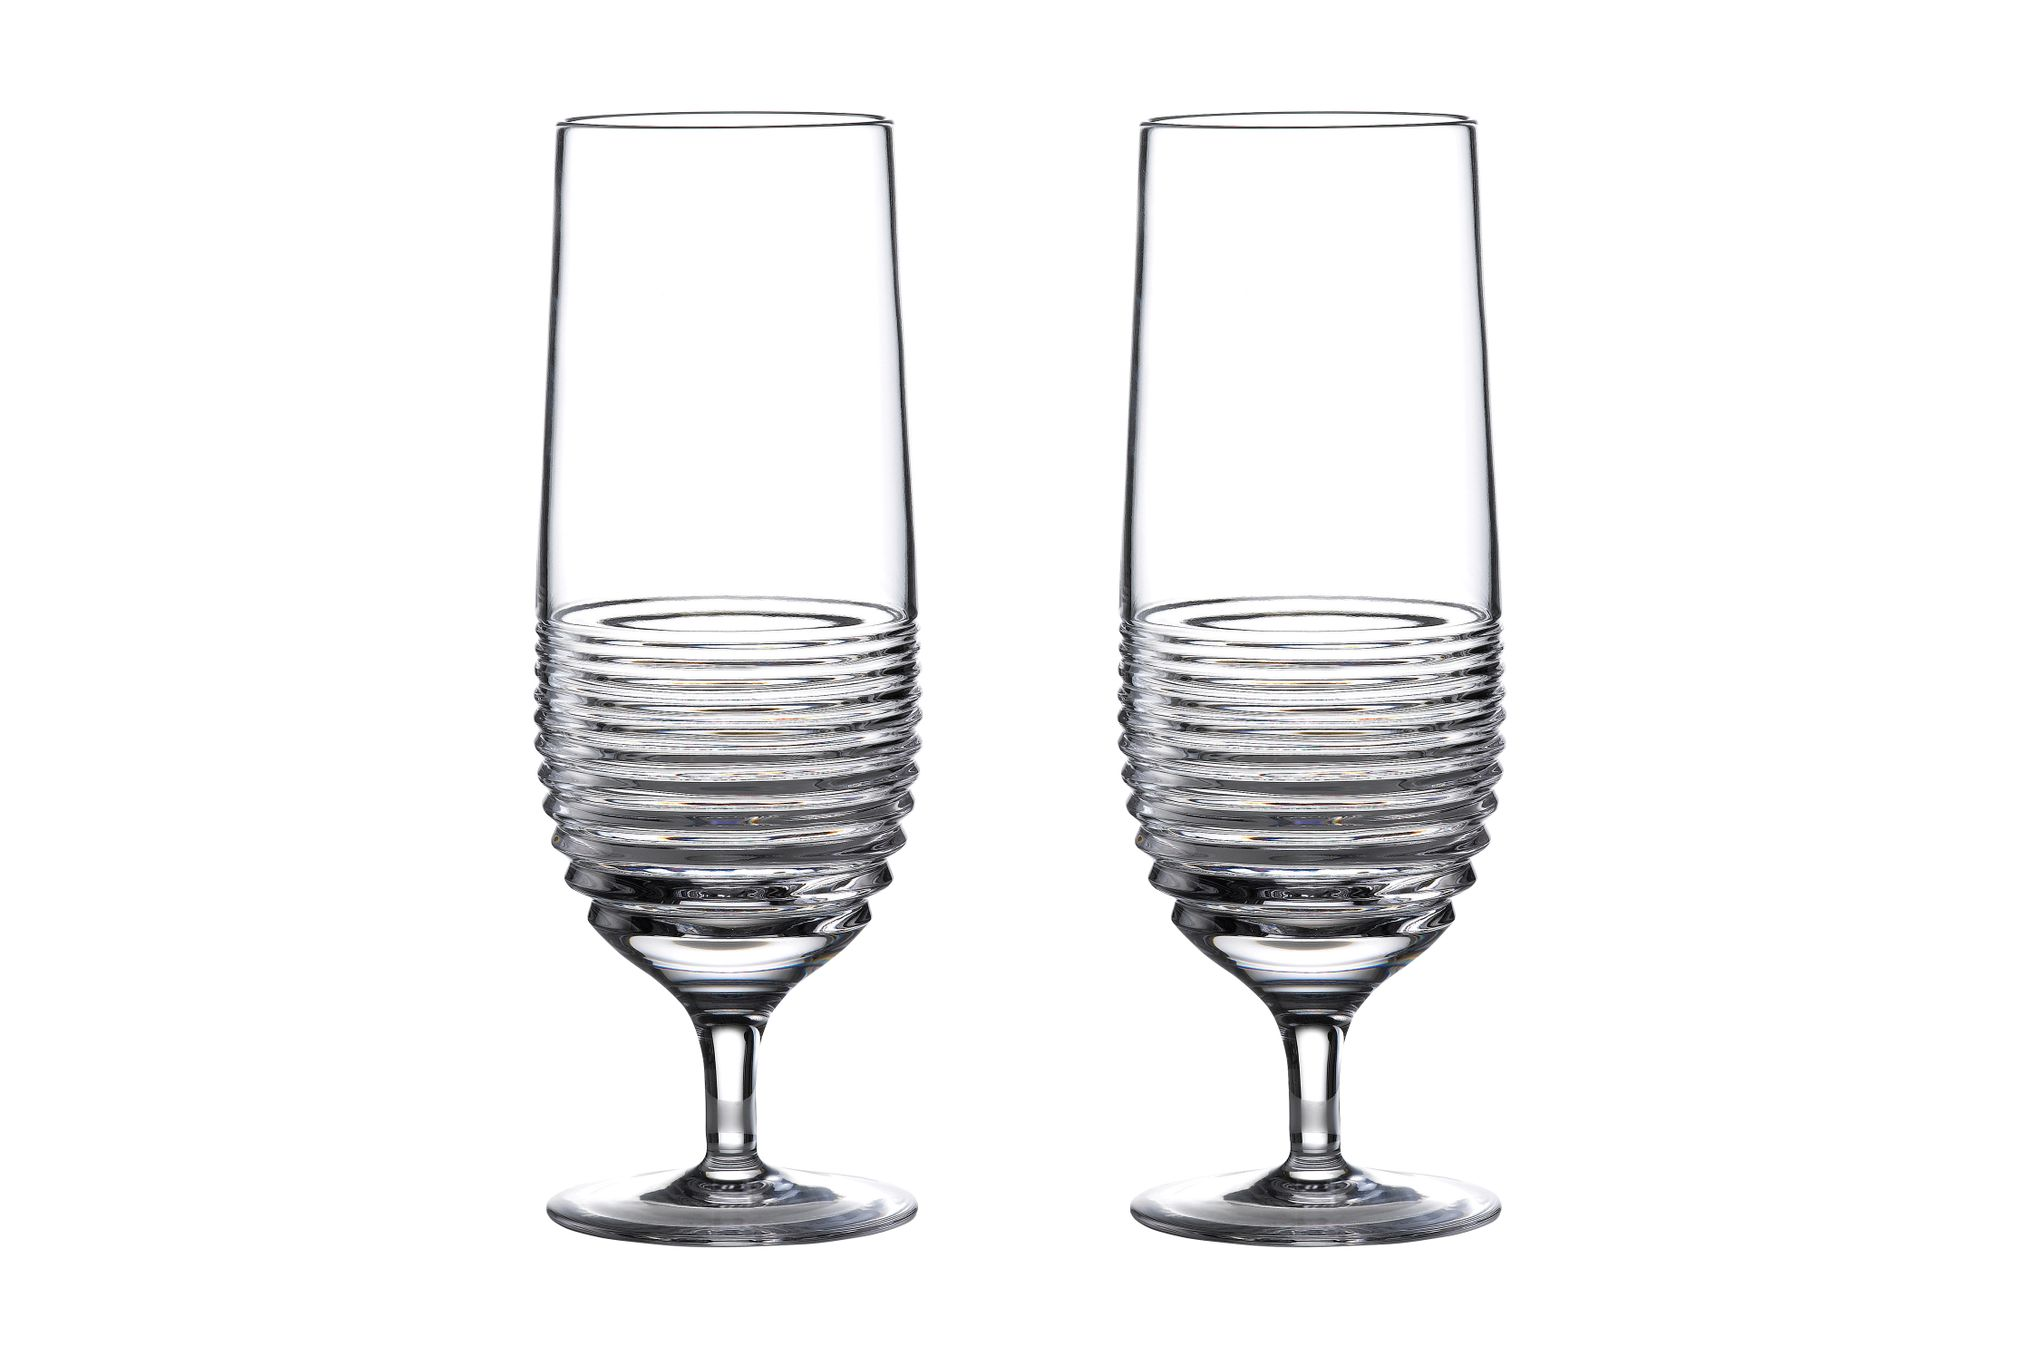 Waterford Mixology Hurricane Glass - Set of 2 7.1 x 20cm thumb 1